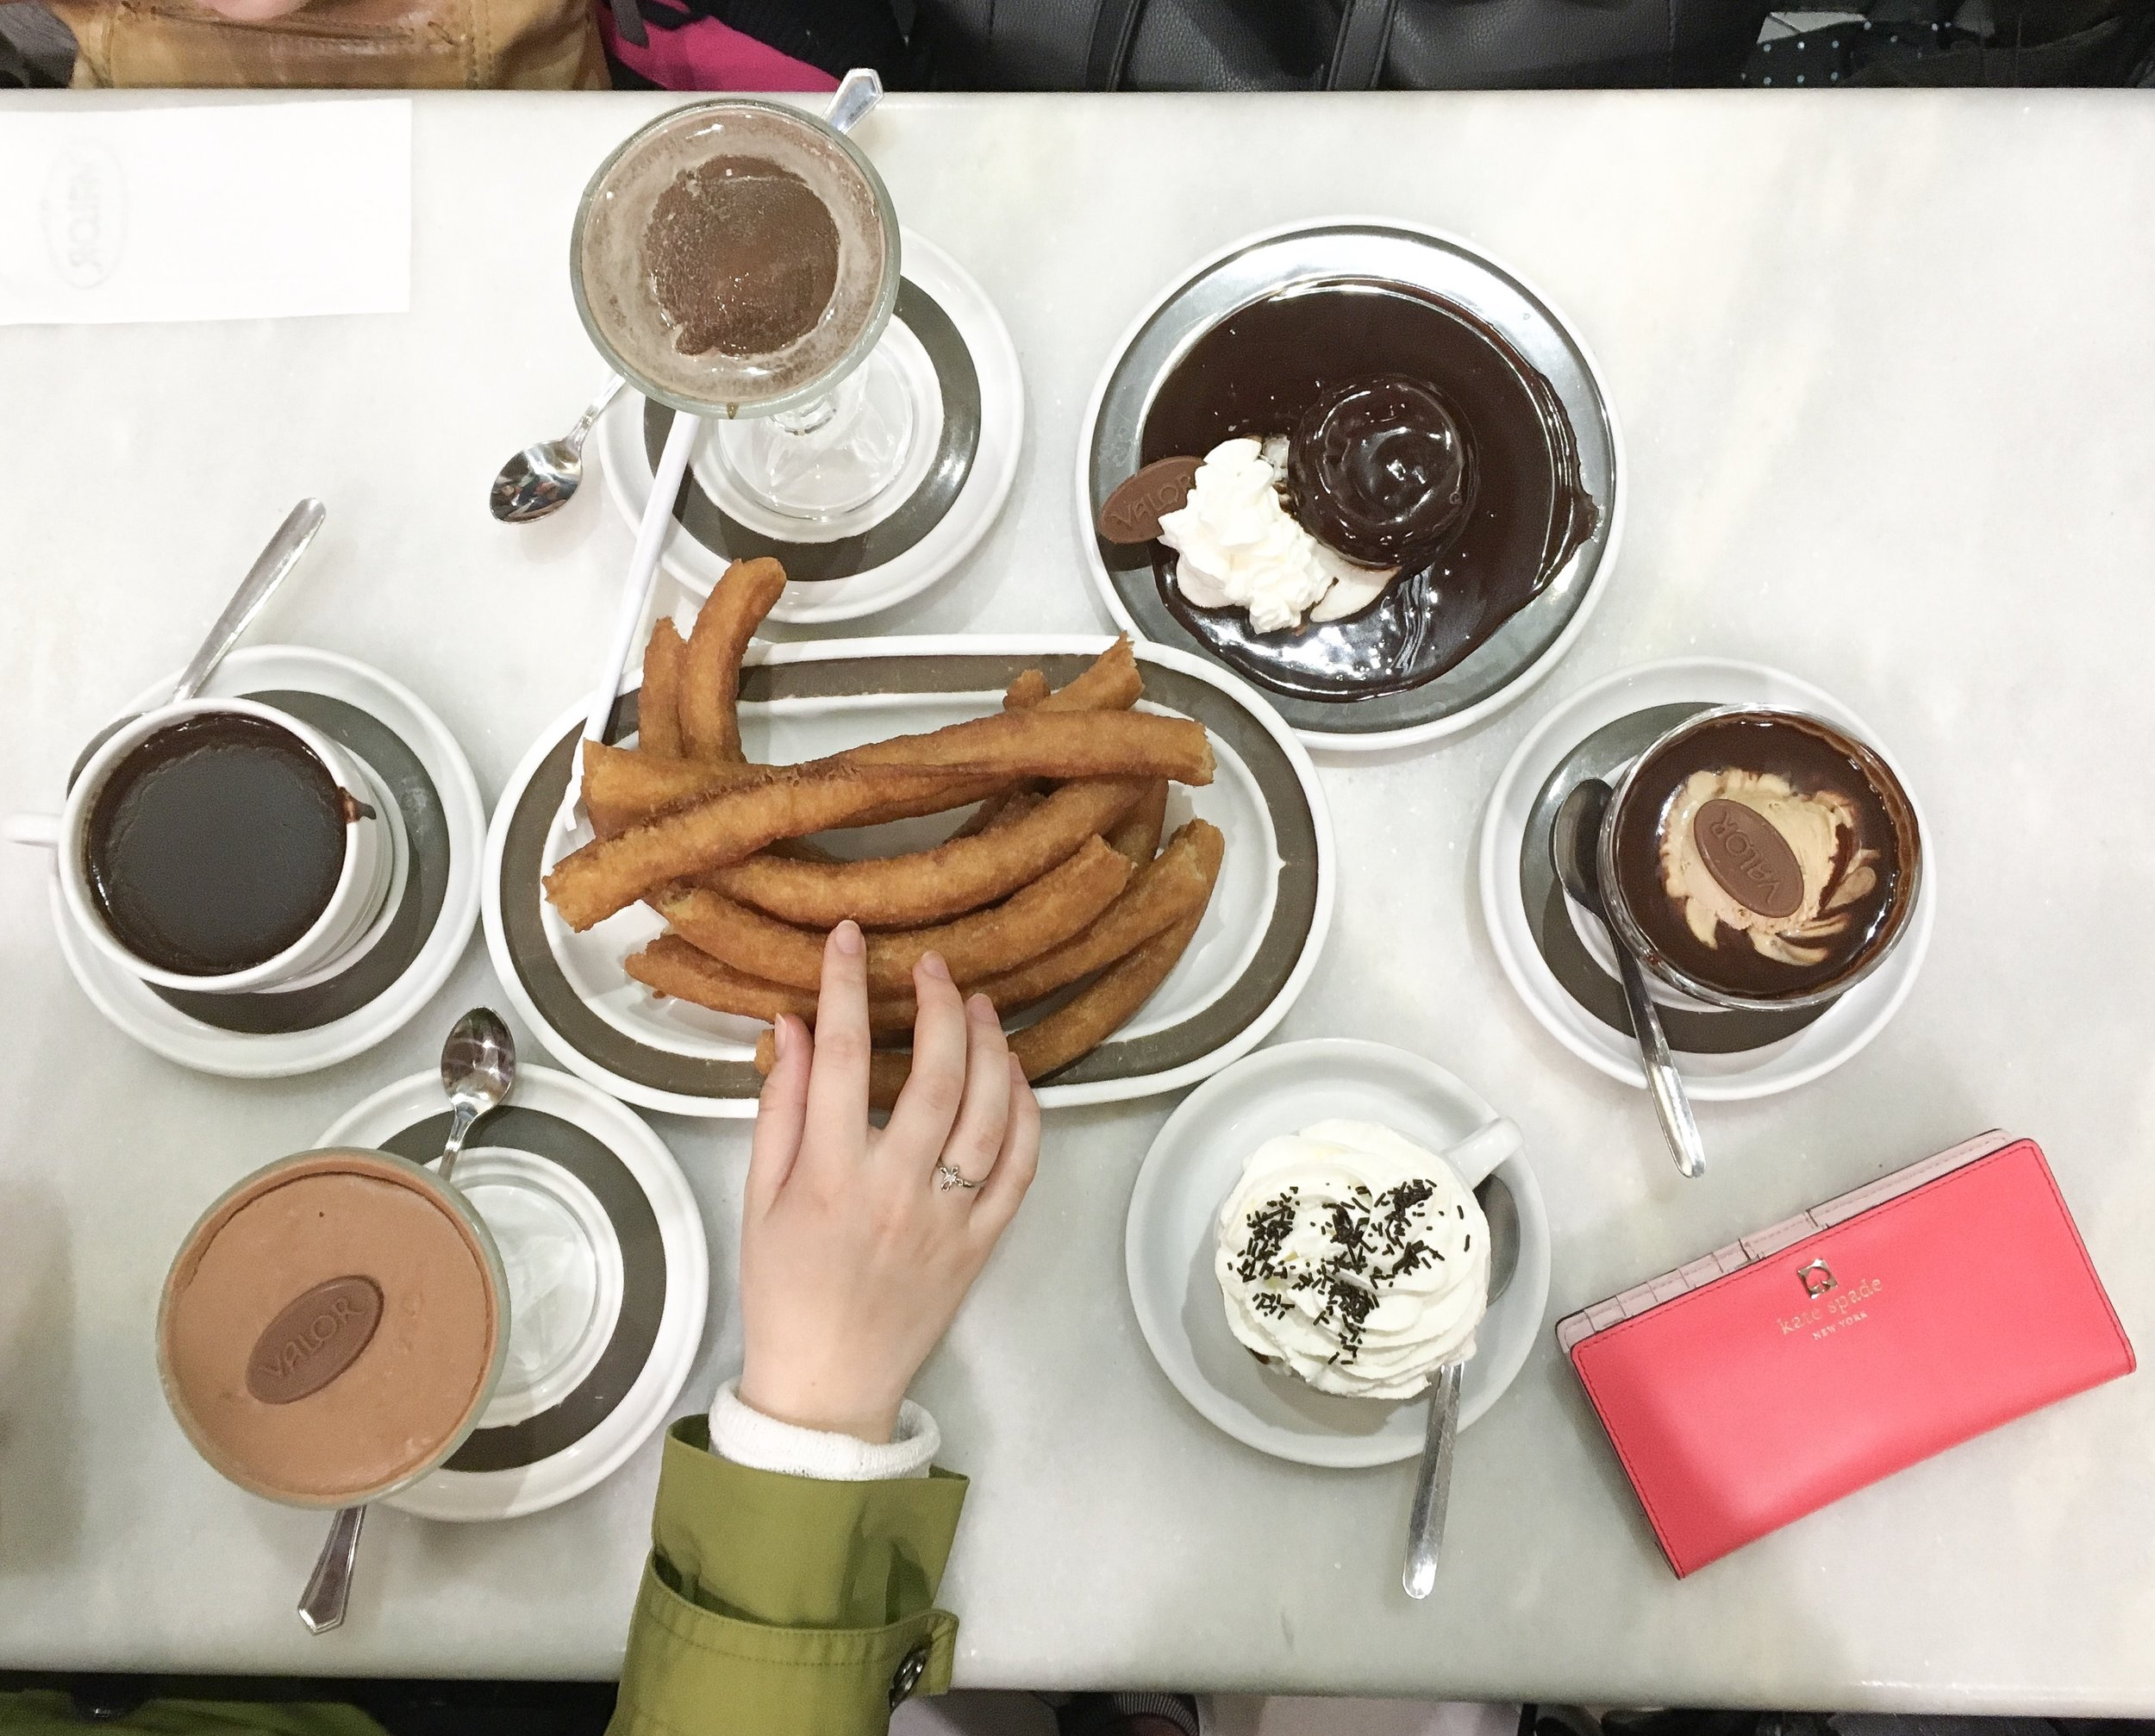 Getting churros con chocolate was a thing my friends and I loved doing— we would order a portion and share amongst ourselves